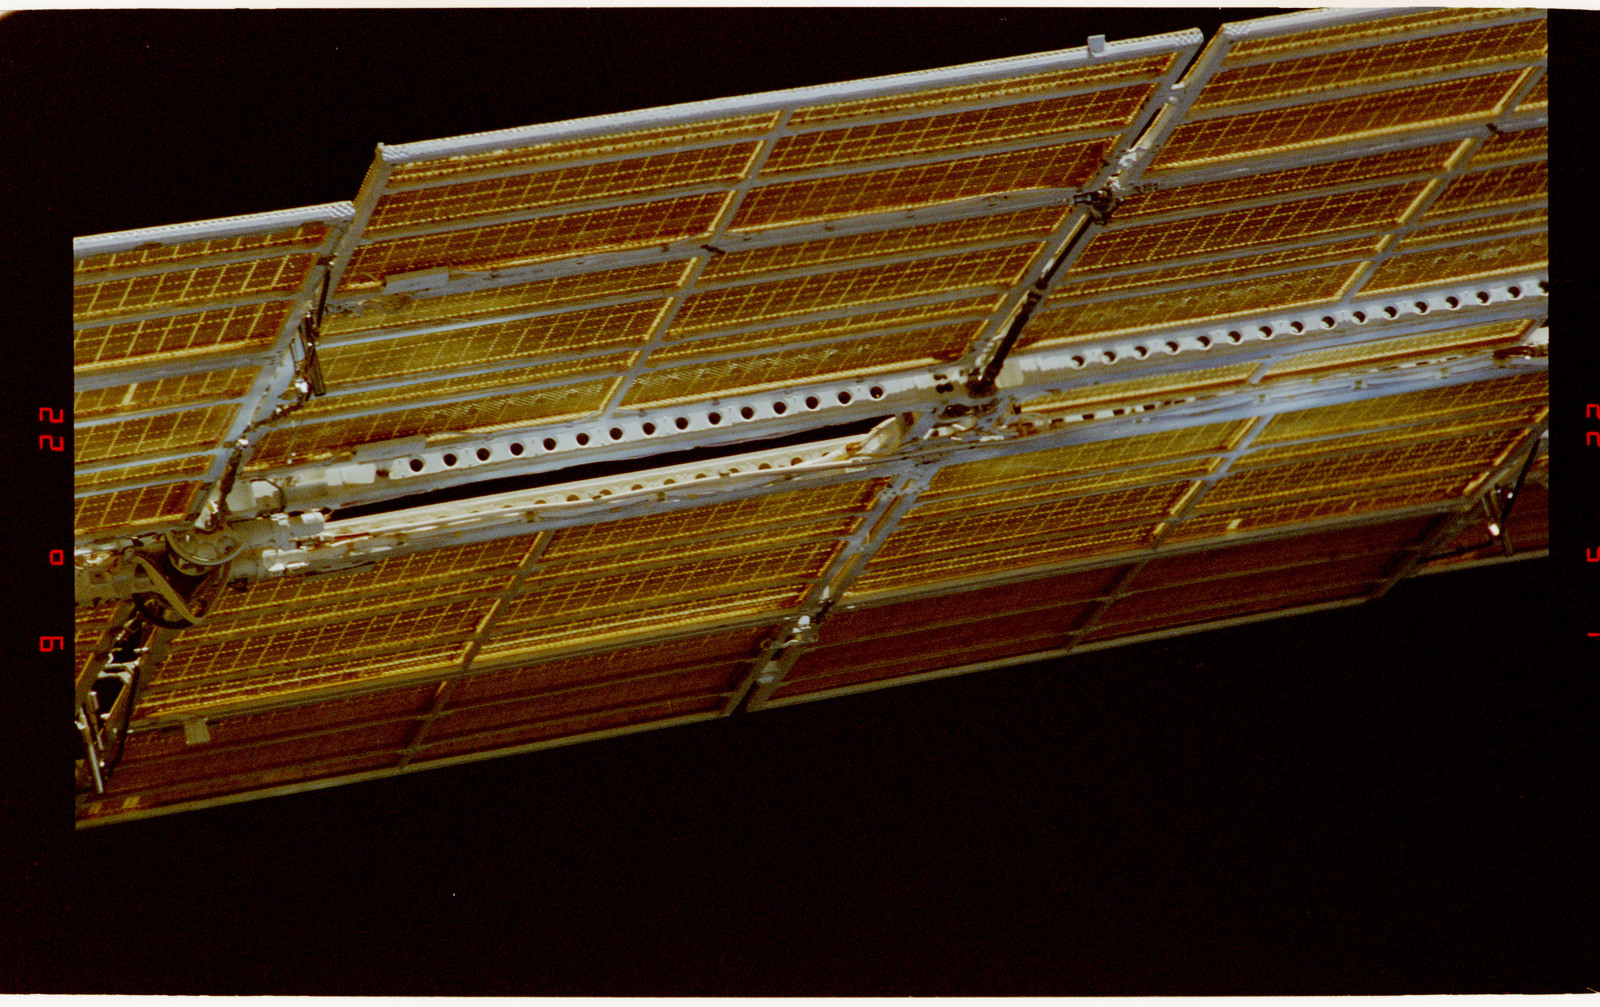 STS071-321-028 - STS-071 - Solar arrays on the Mir space station